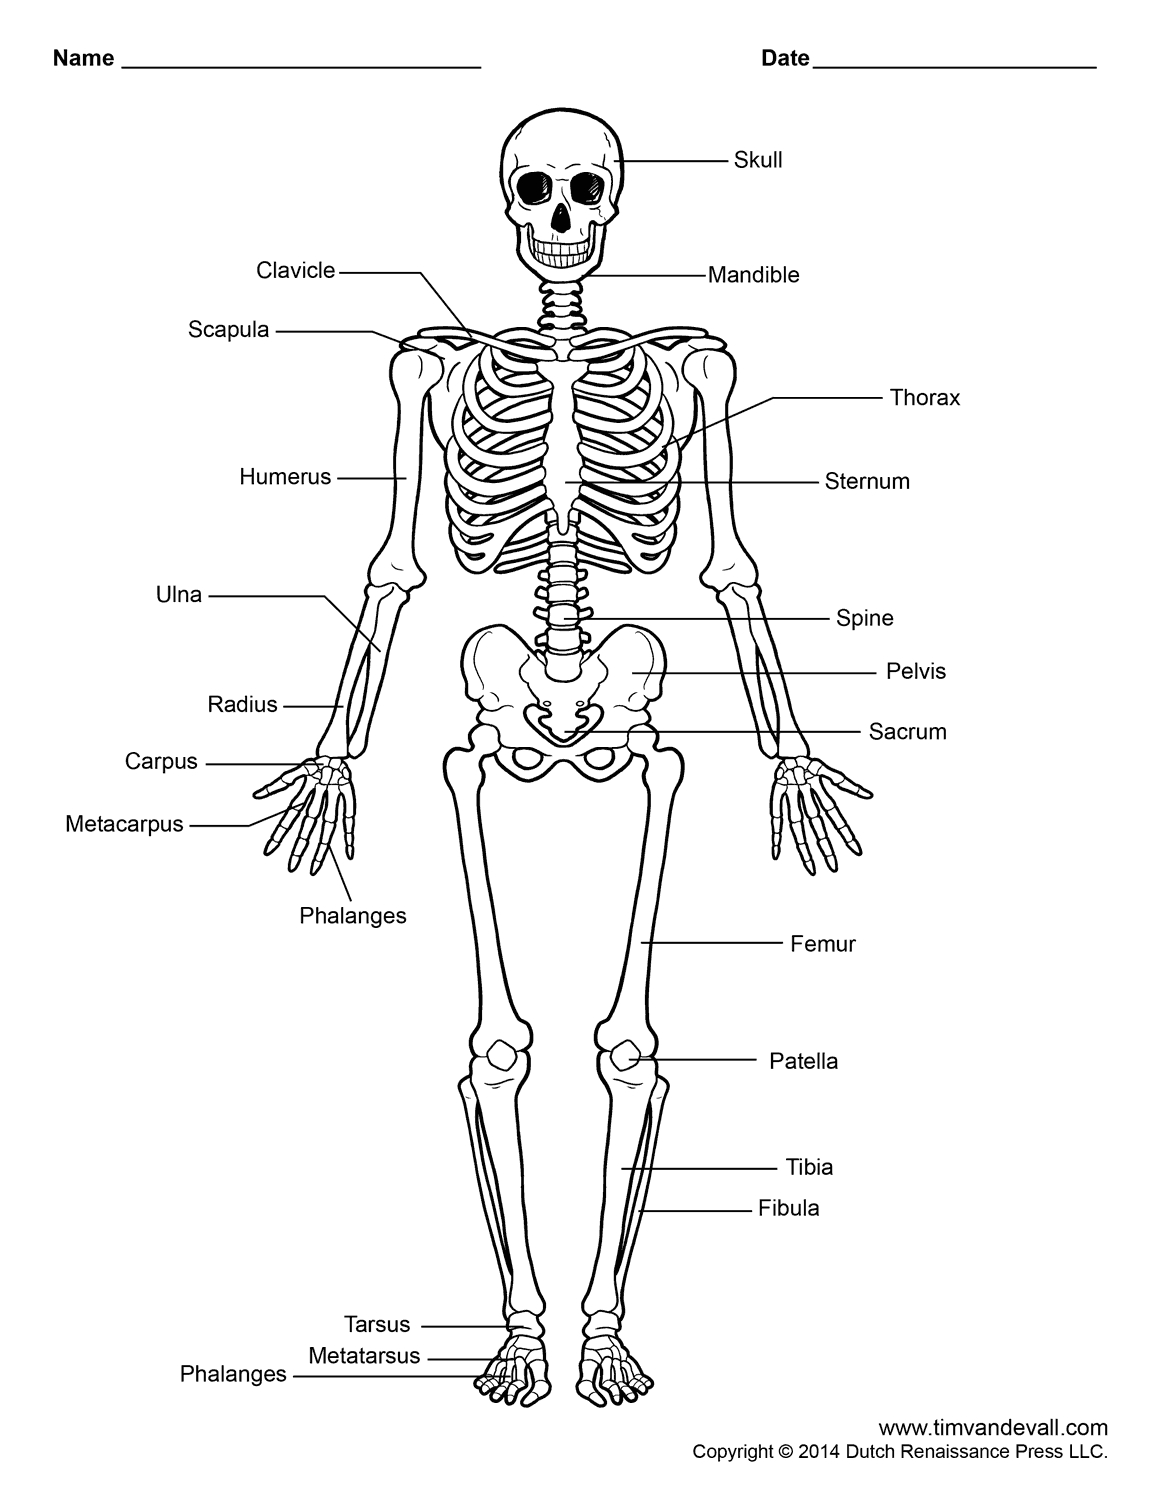 Human skeletal system drawing at getdrawings free for personal 1159x1500 pictures of human skeleton and their label skeletal system labels ccuart Choice Image